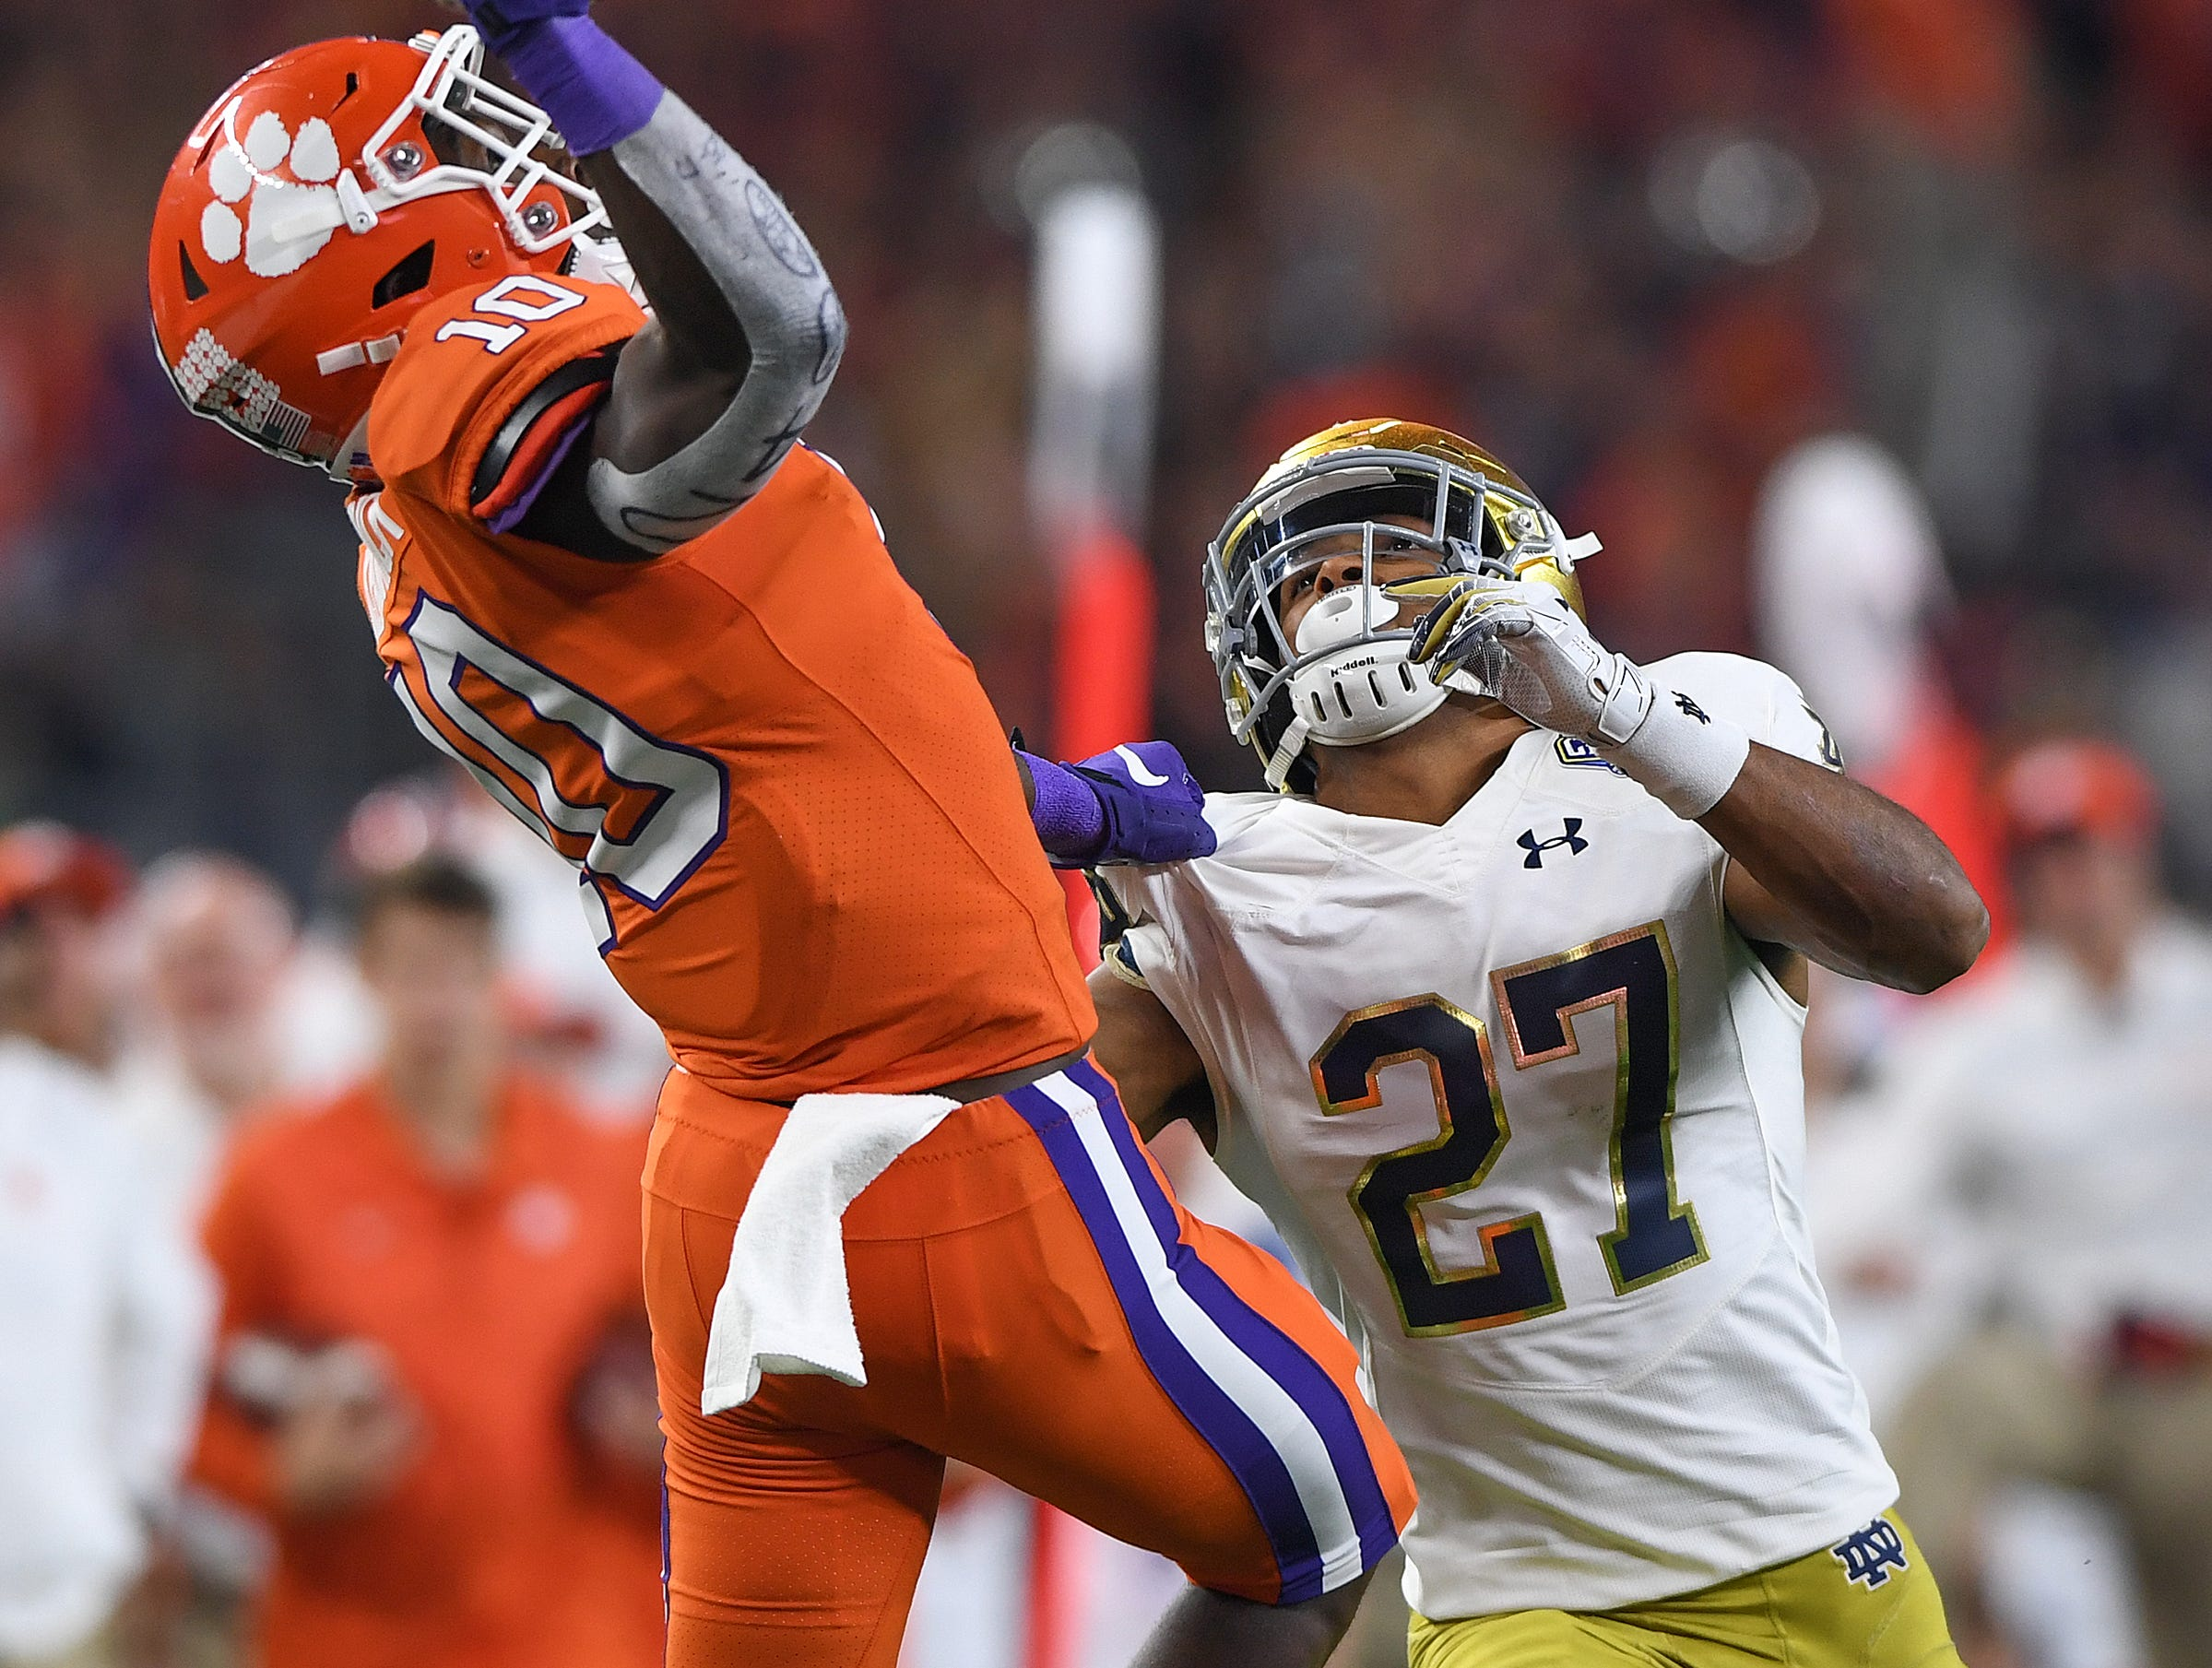 Clemson wide receiver Derion Kendrick (10) can't come down with a pass while being defended by Notre Dame cornerback Julian Love (27) during the 4th quarter of the Goodyear Cotton Bowl at AT&T stadium in Arlington, TX Saturday, December 29, 2018.